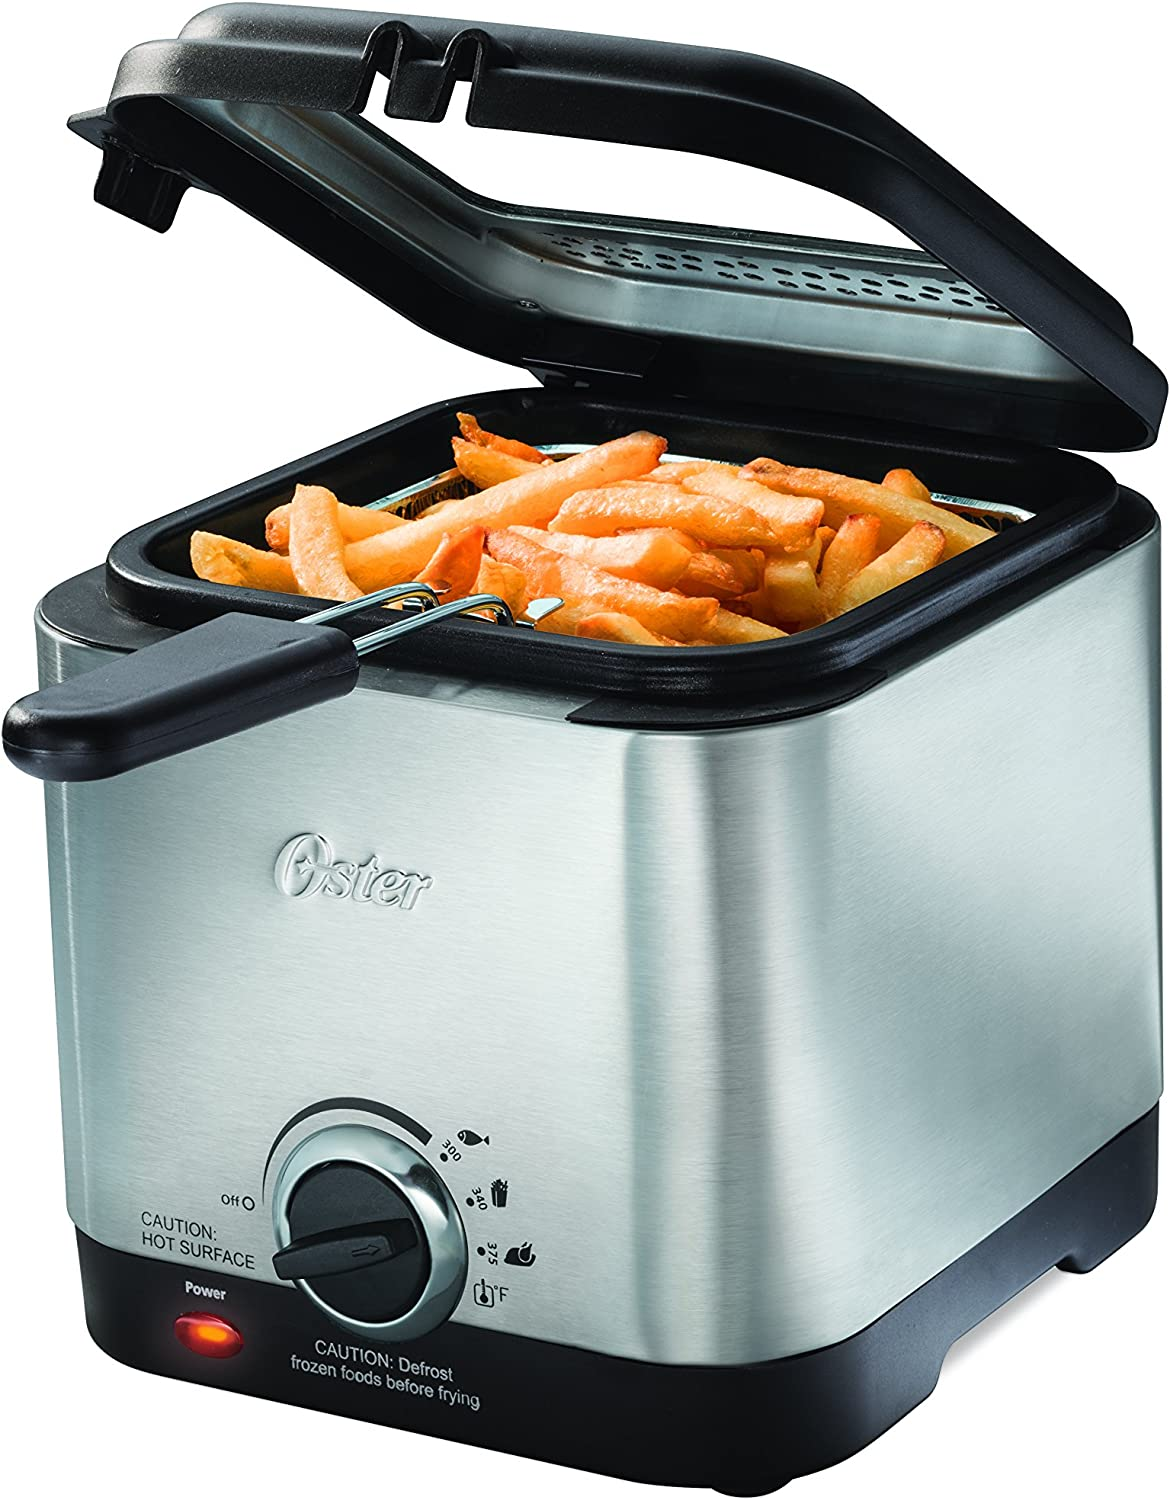 Oster Style Compact Deep Fryer - Mini fryer review